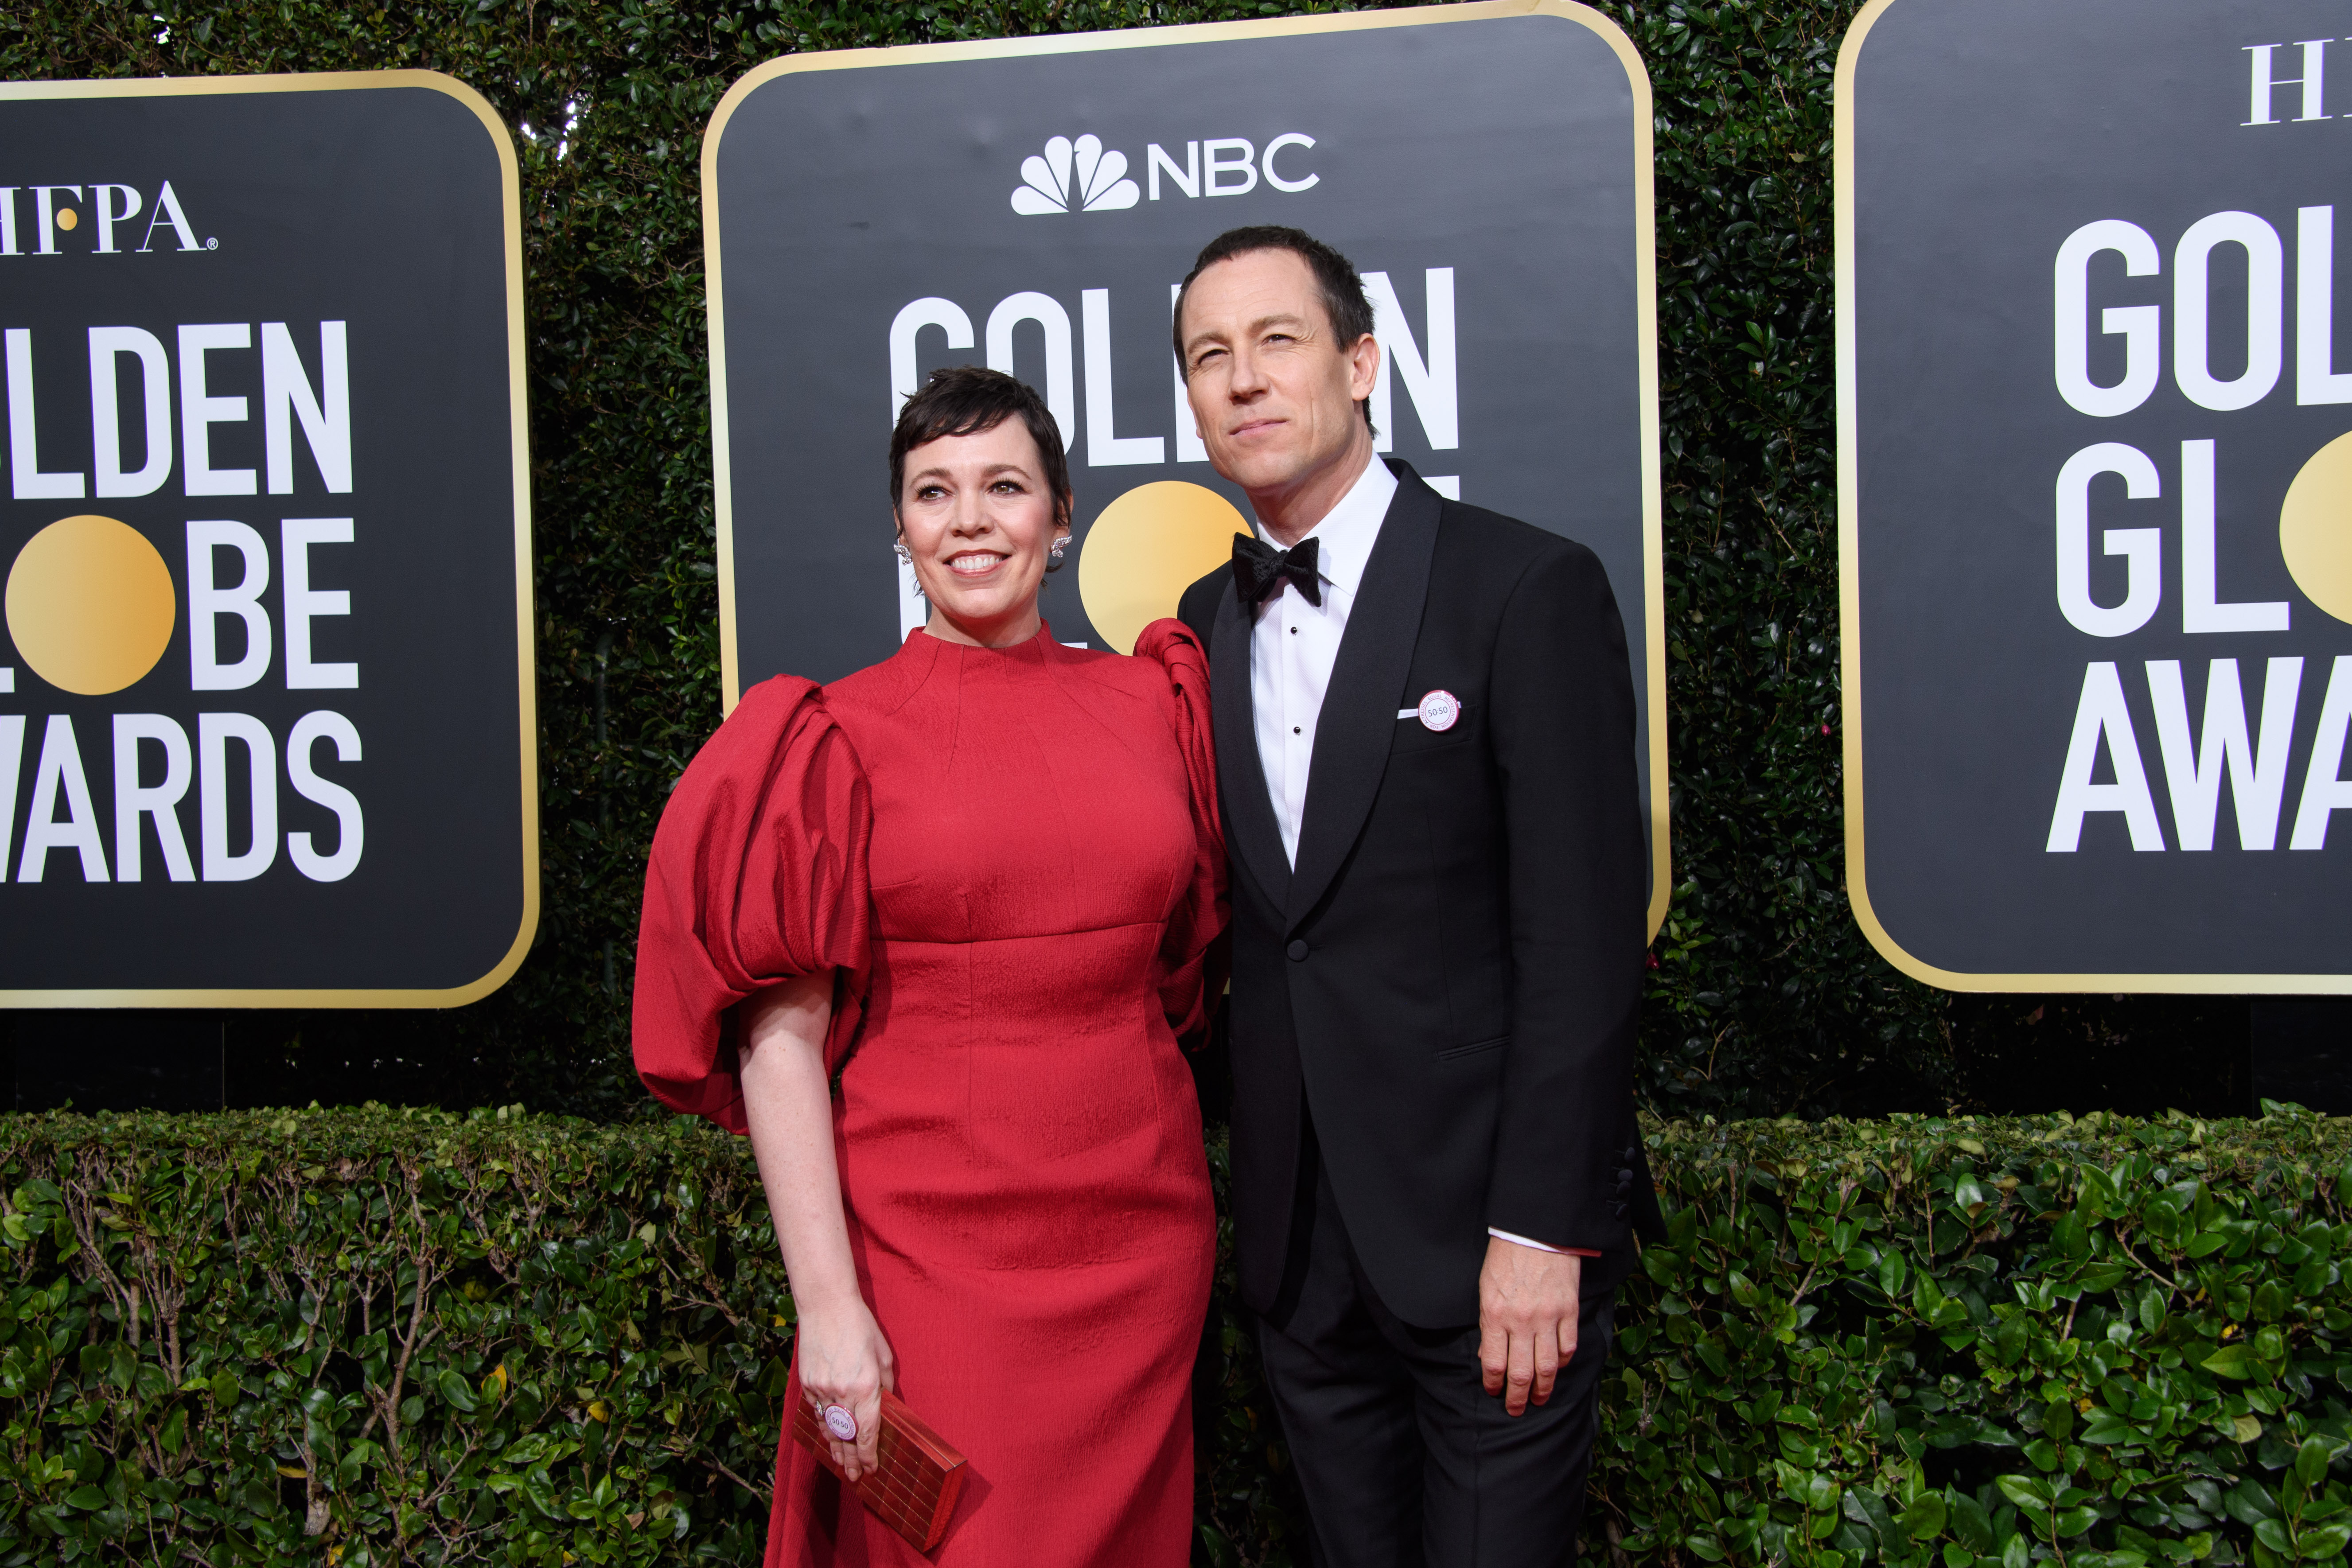 Nominees Olivia Colman and Tobias Menzies arrive at the 77th Annual Golden Globe Awards at the Beverly Hilton in Beverly Hills, CA on Sunday, January 5, 2020.